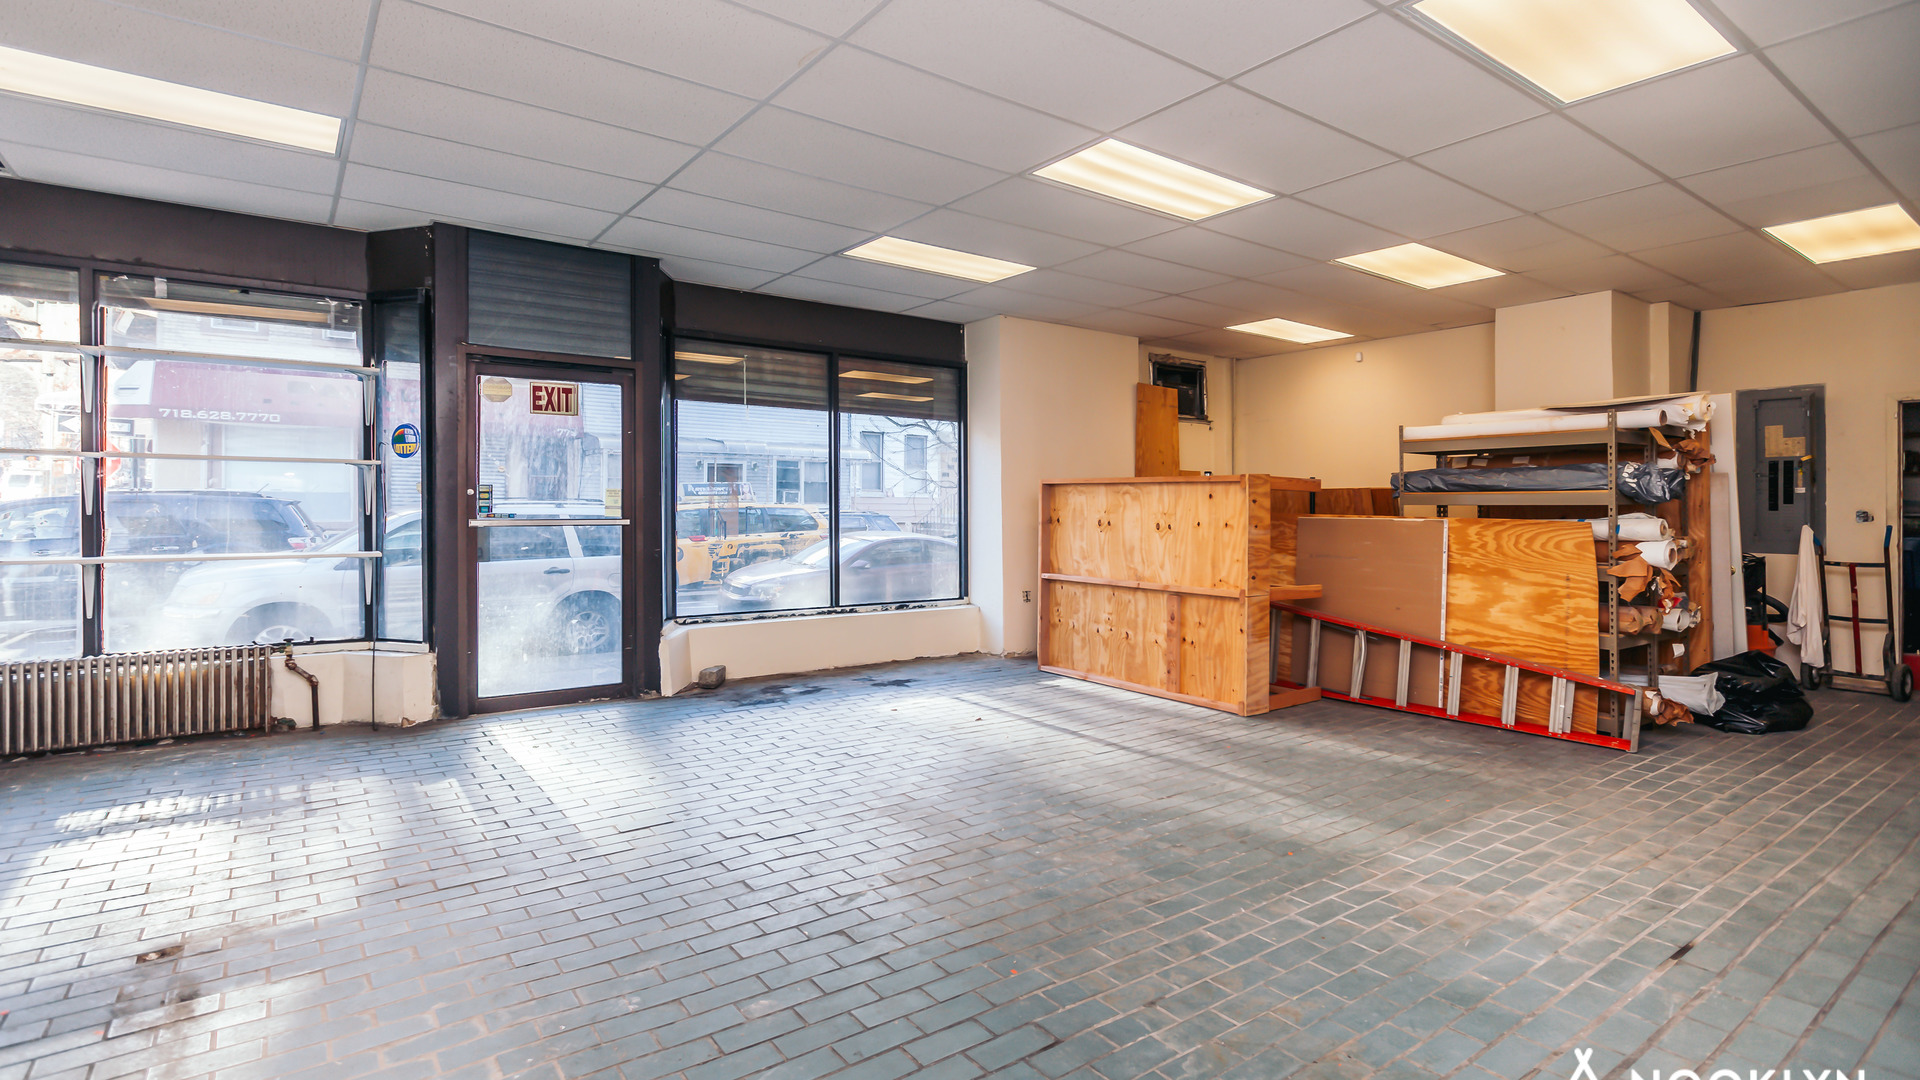 A $4,400 commercial property in Ridgewood, Queens - Nooklyn